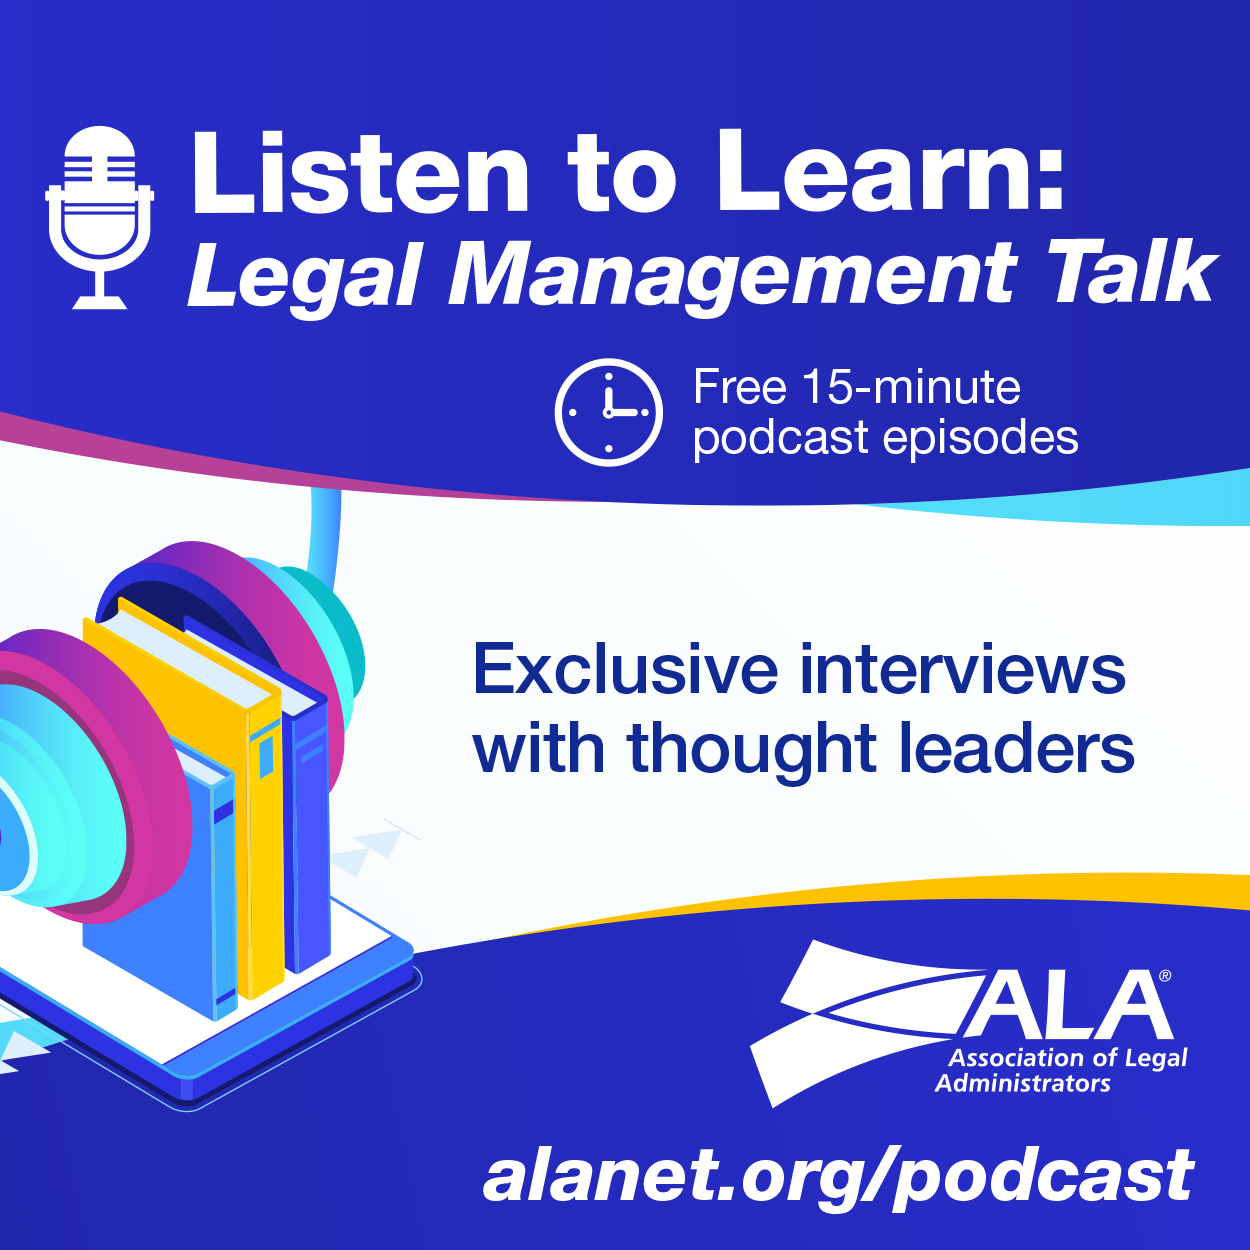 Legal Management Talk Podcasts